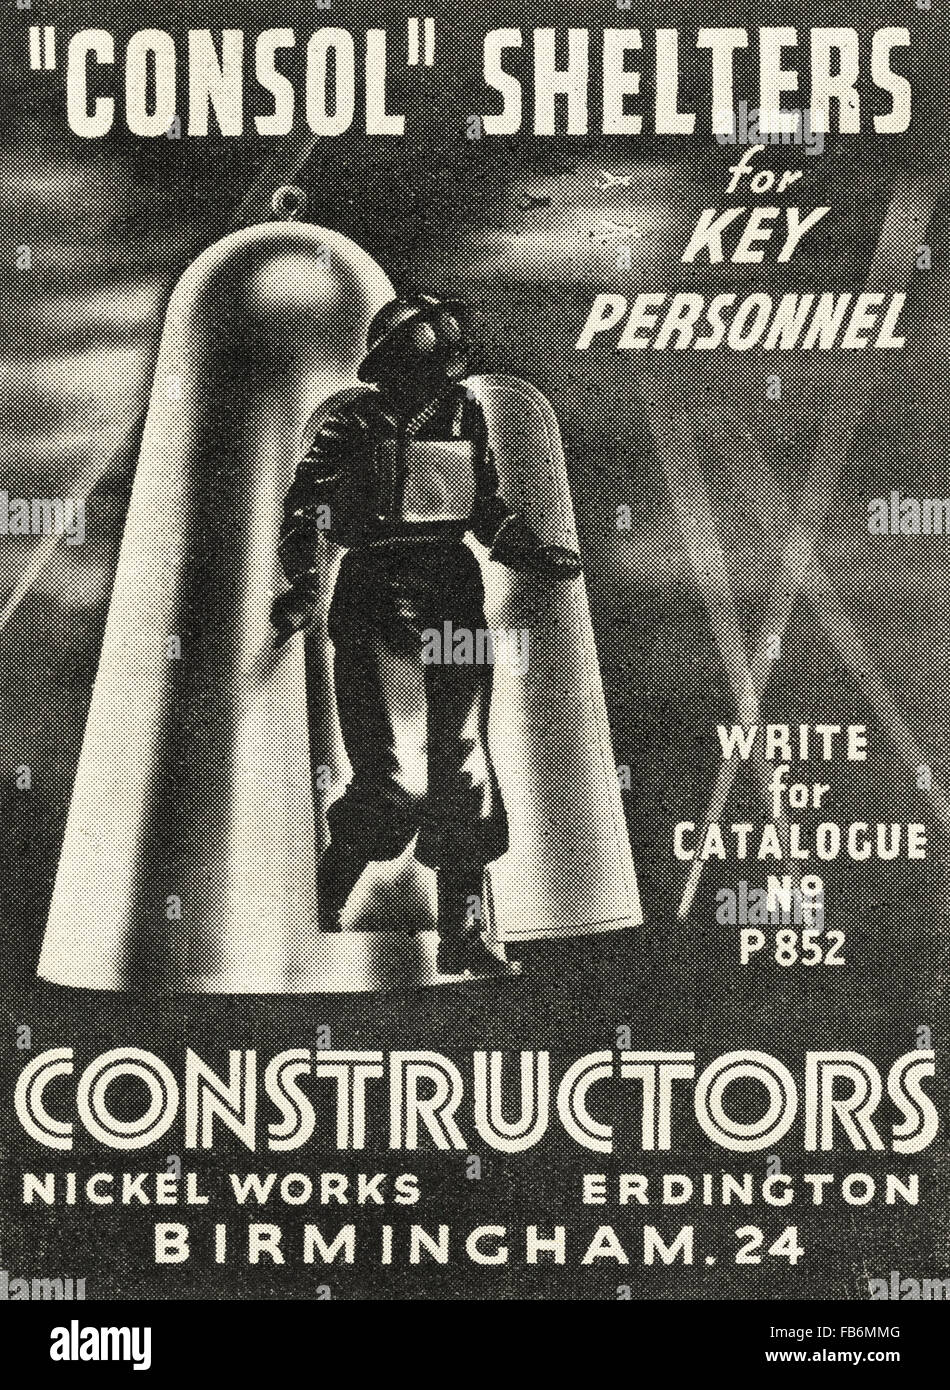 Original vintage advert from 1930s. Advertisement from October 1939, at the start of World War II, advertising Consol - Stock Image